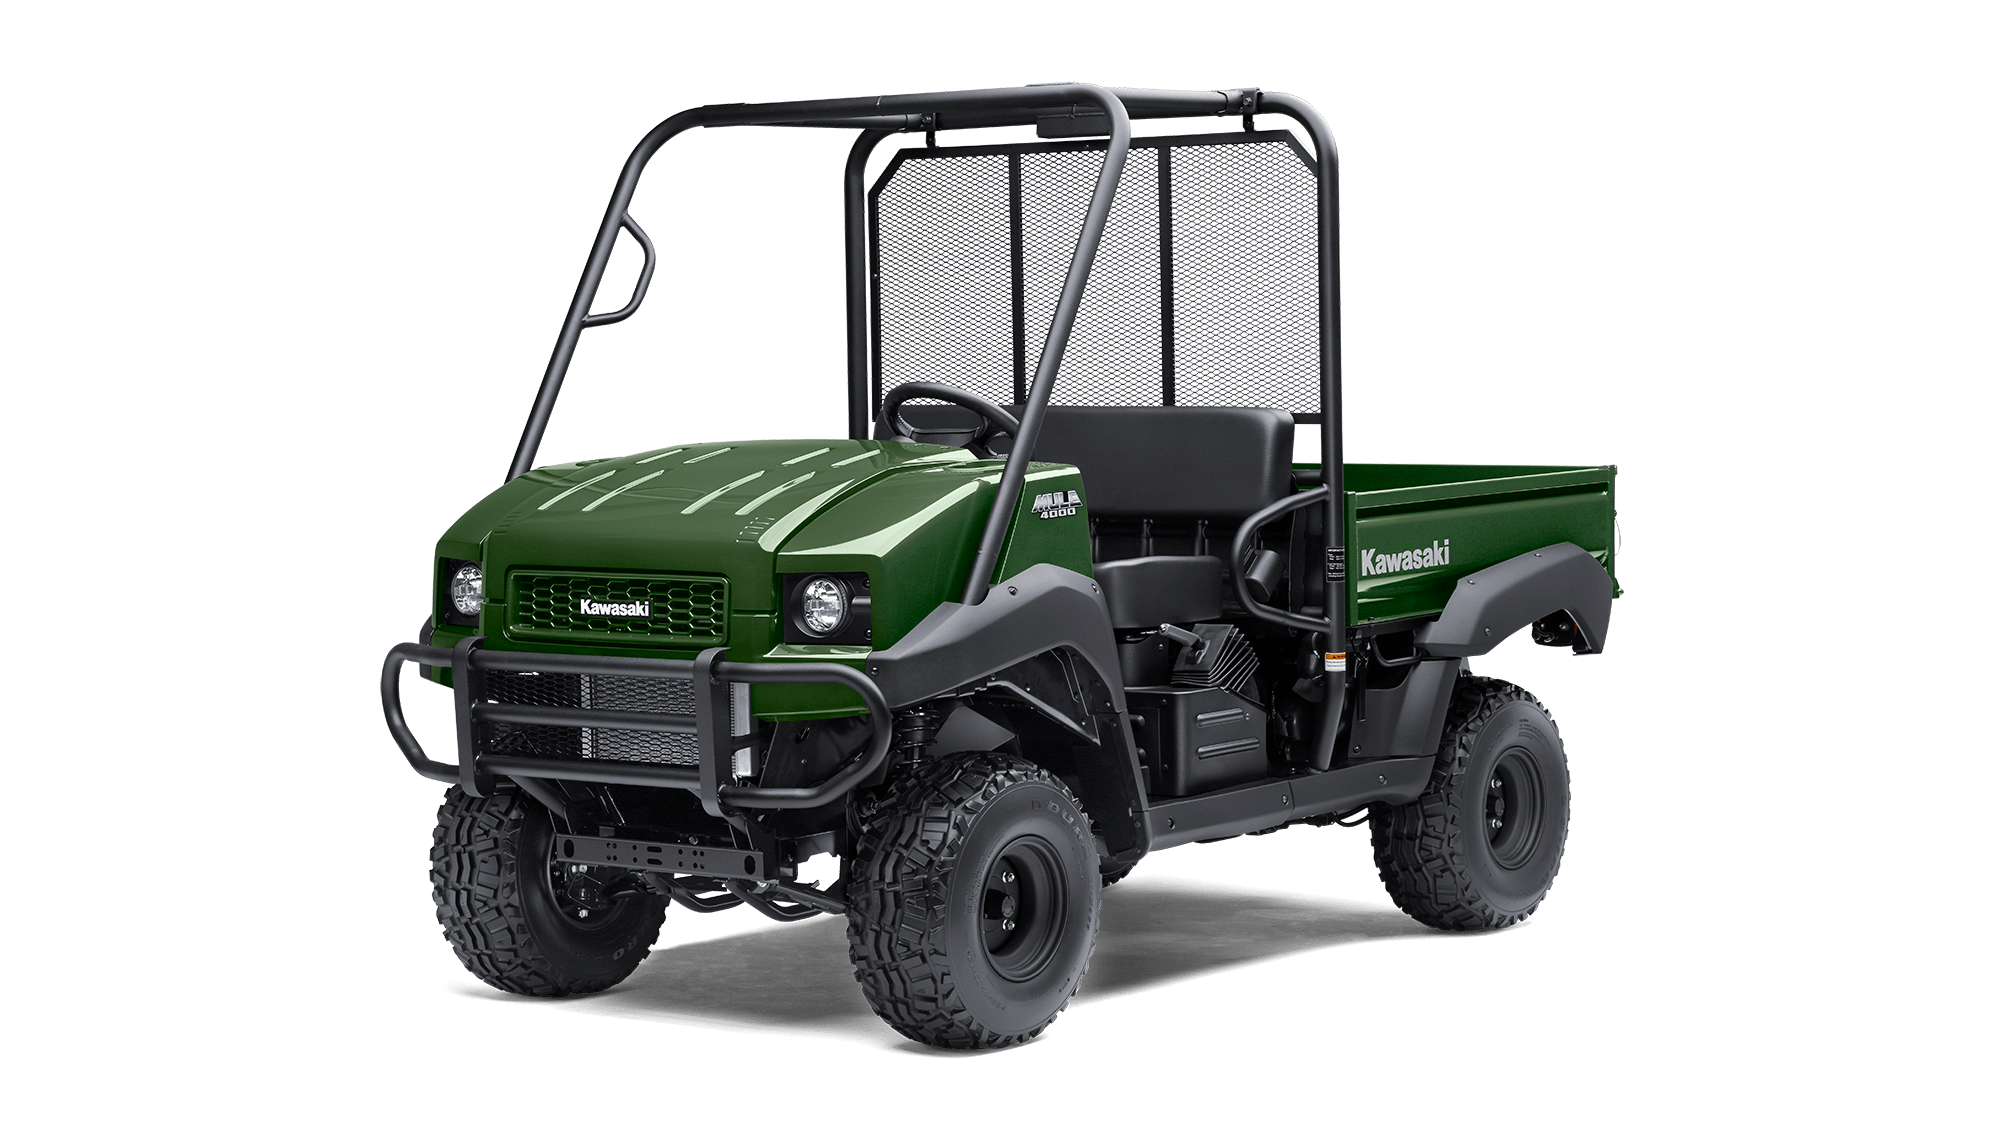 hight resolution of 2019 mule 4000 mule side x side by kawasaki 2510 kawasaki mule wiring diagram kawasaki mule 4000 wiring diagram